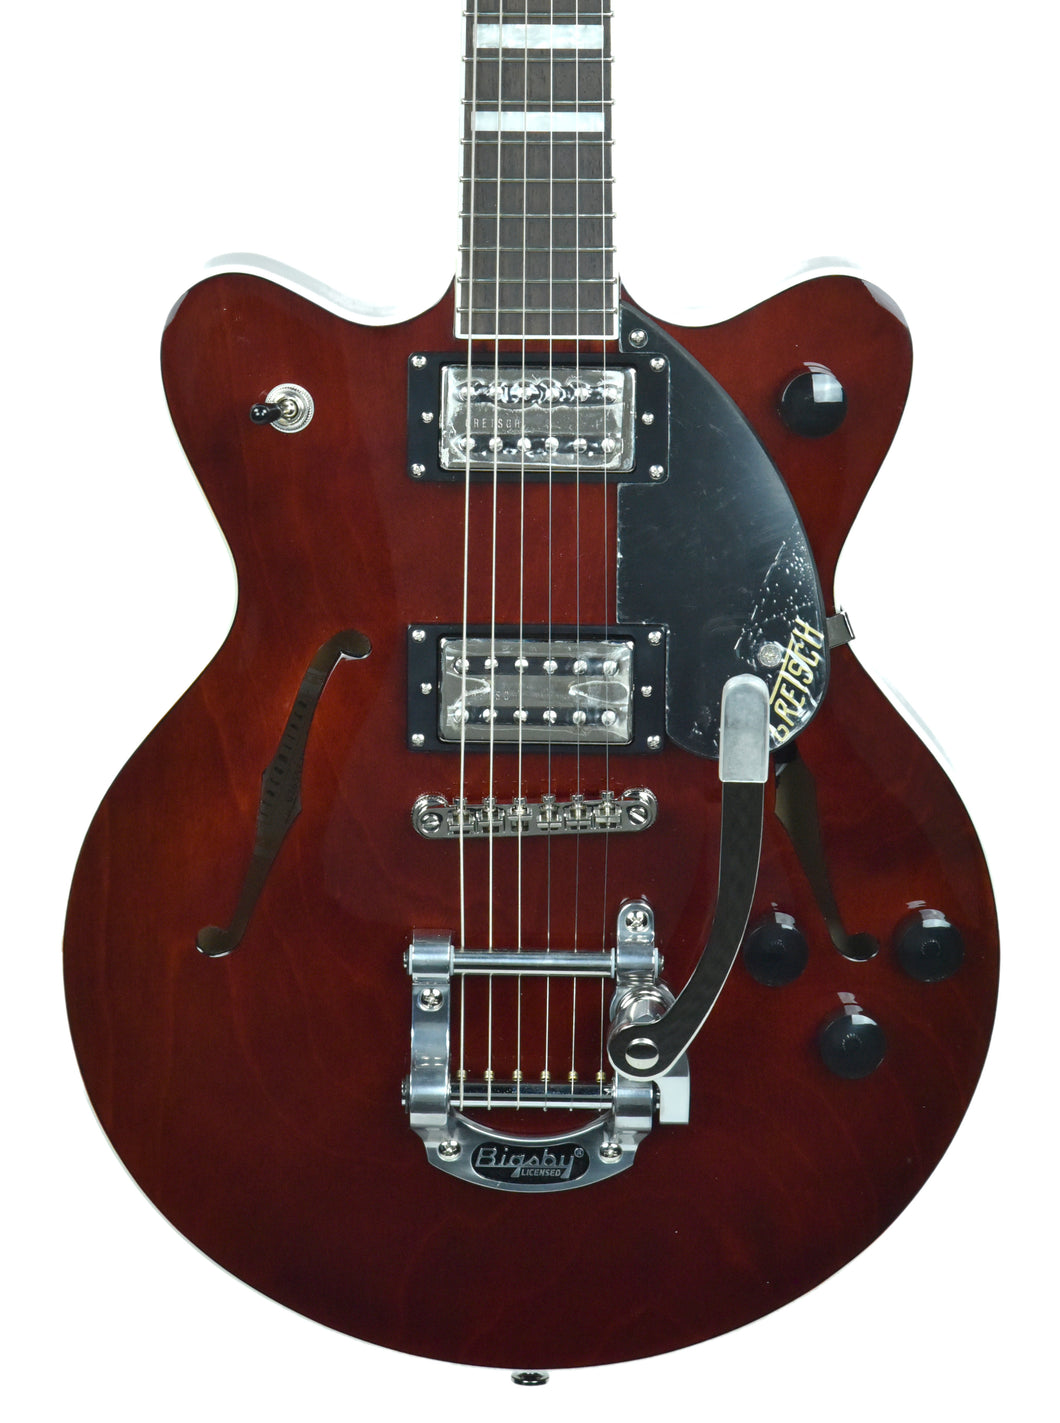 Gretsch G2655T Streamliner Center Block Jr. w/ Bigsby in Walnut Stain SN IS180300946